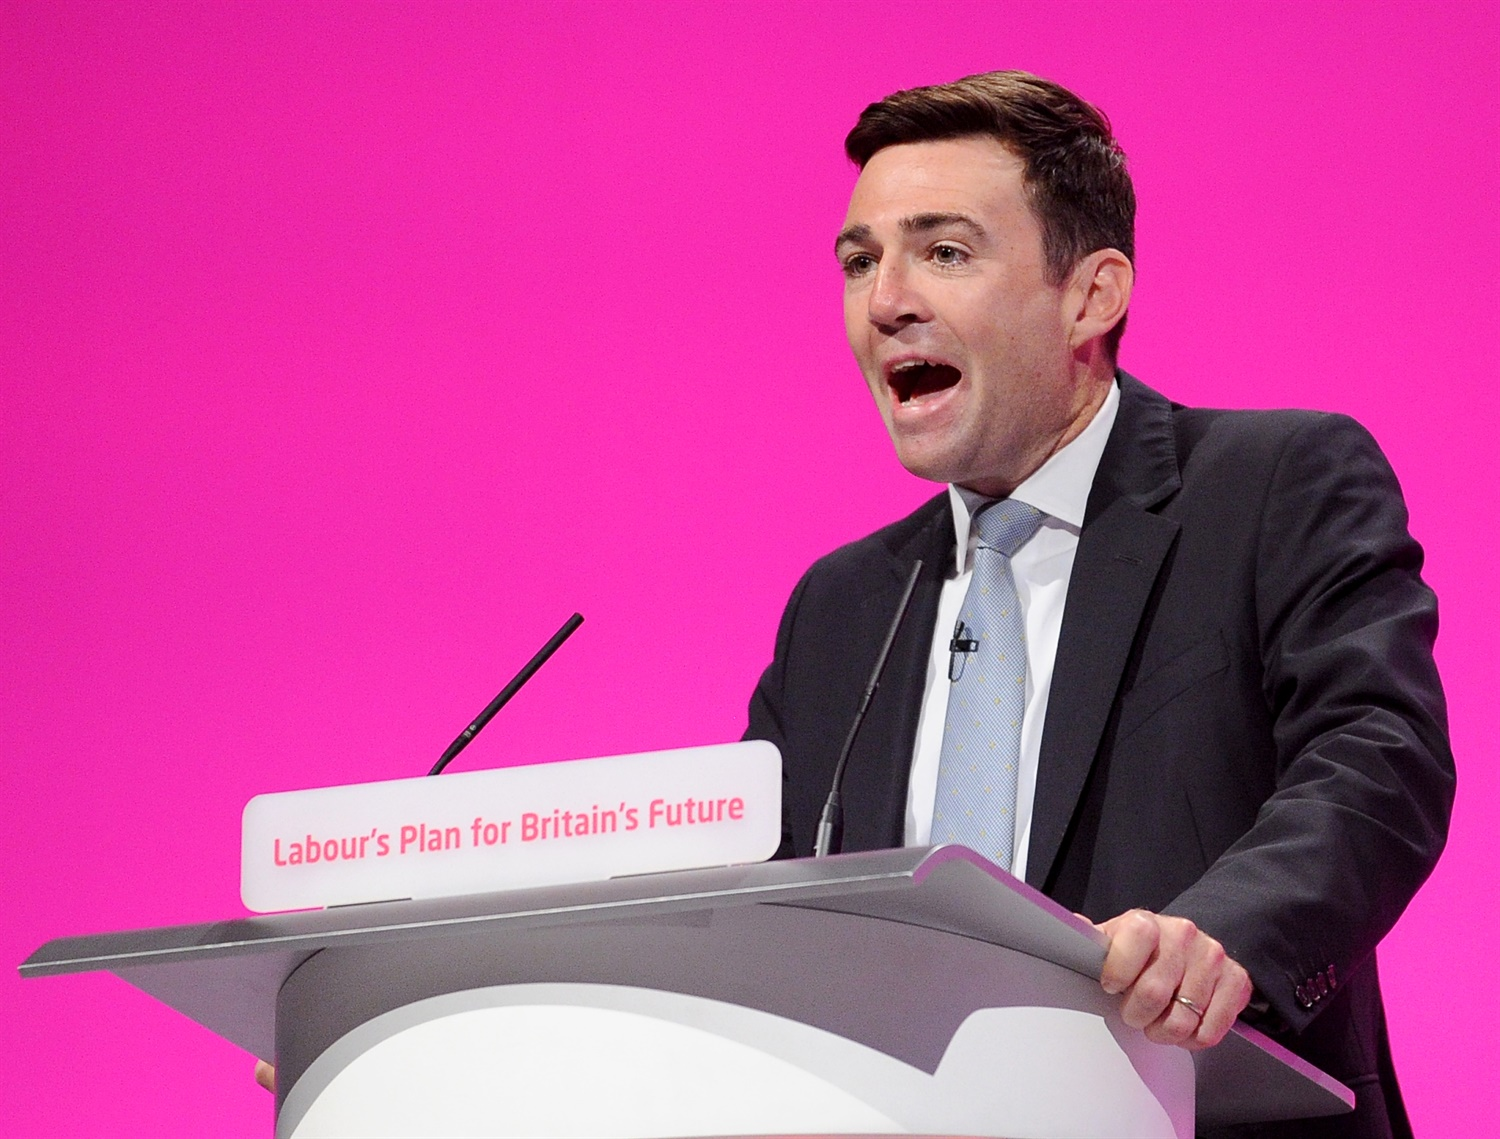 Rail chaos: Burnham claims Grayling is 'asleep at the wheel', rail operators apologise